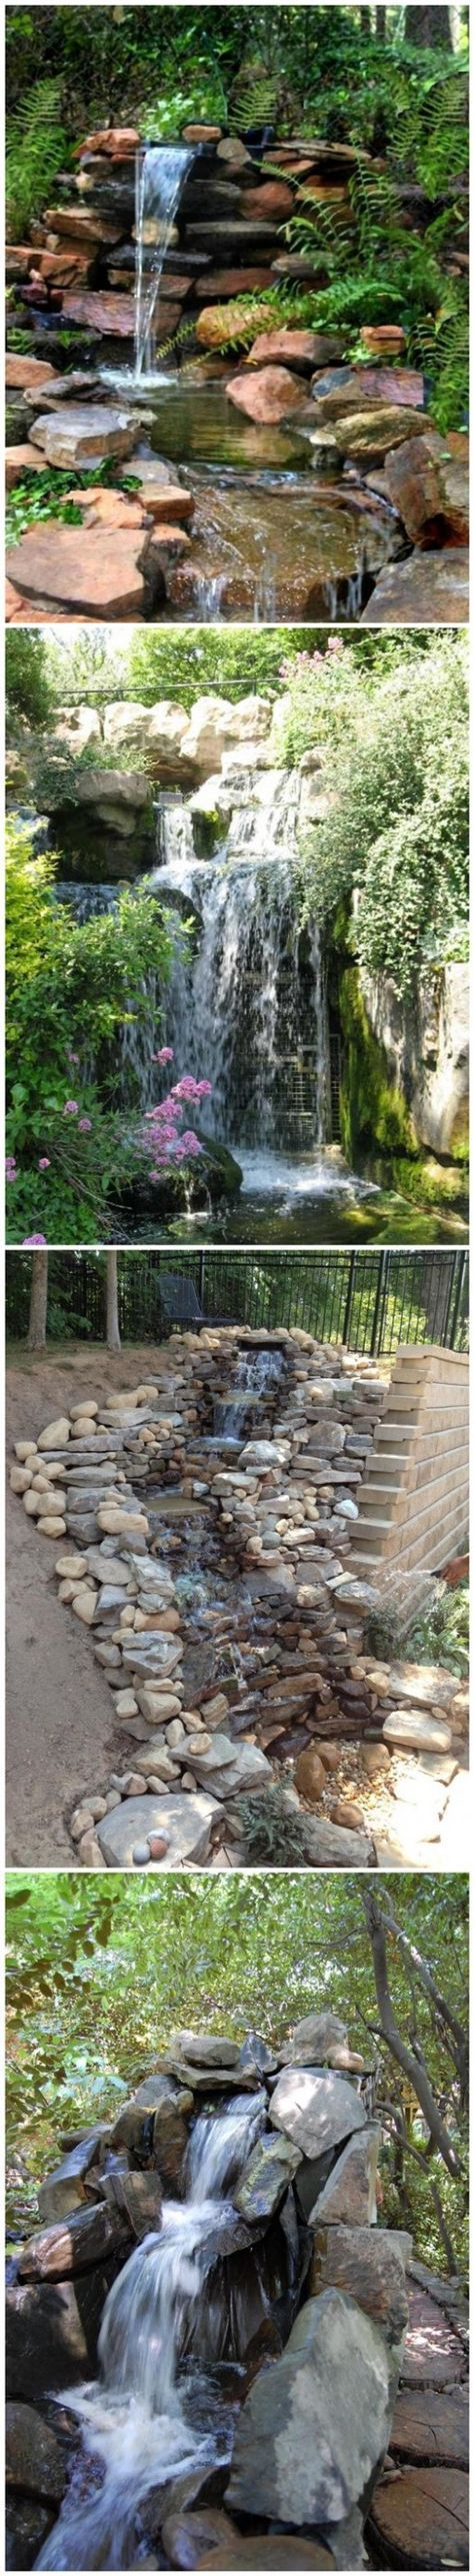 How To Build A Garden Waterfall Pond 1